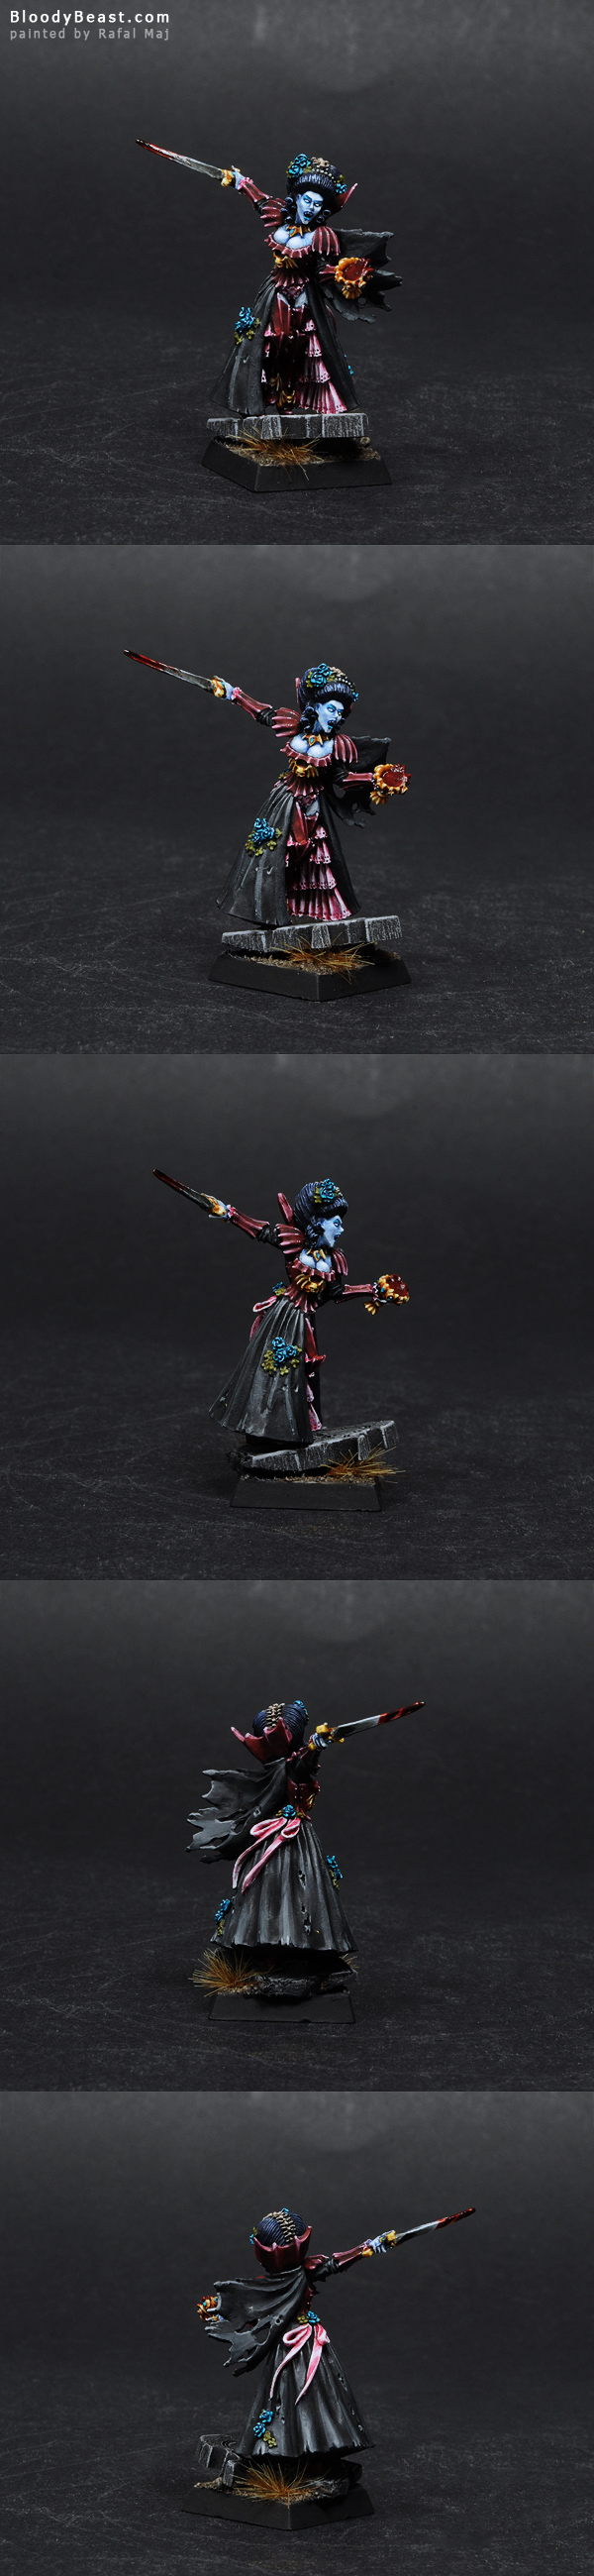 Isabella Von Carstein painted by Rafal Maj (BloodyBeast.com)